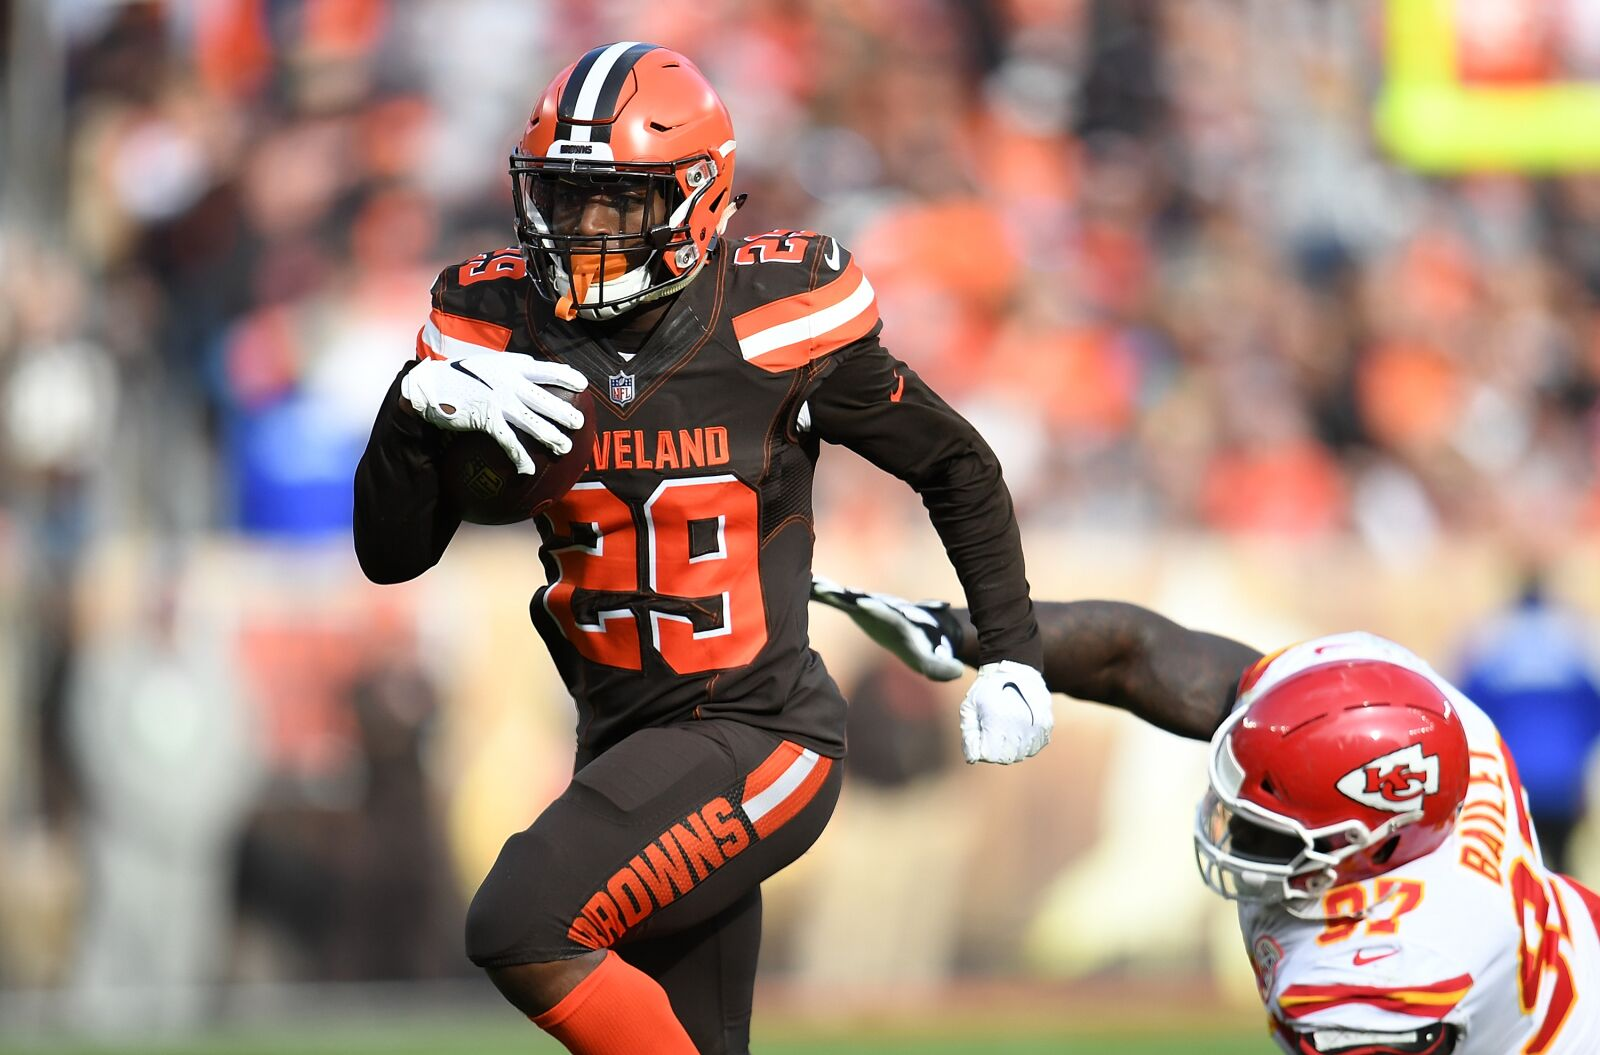 Cleveland Browns: Is Duke Johnson in line for another solid performance?